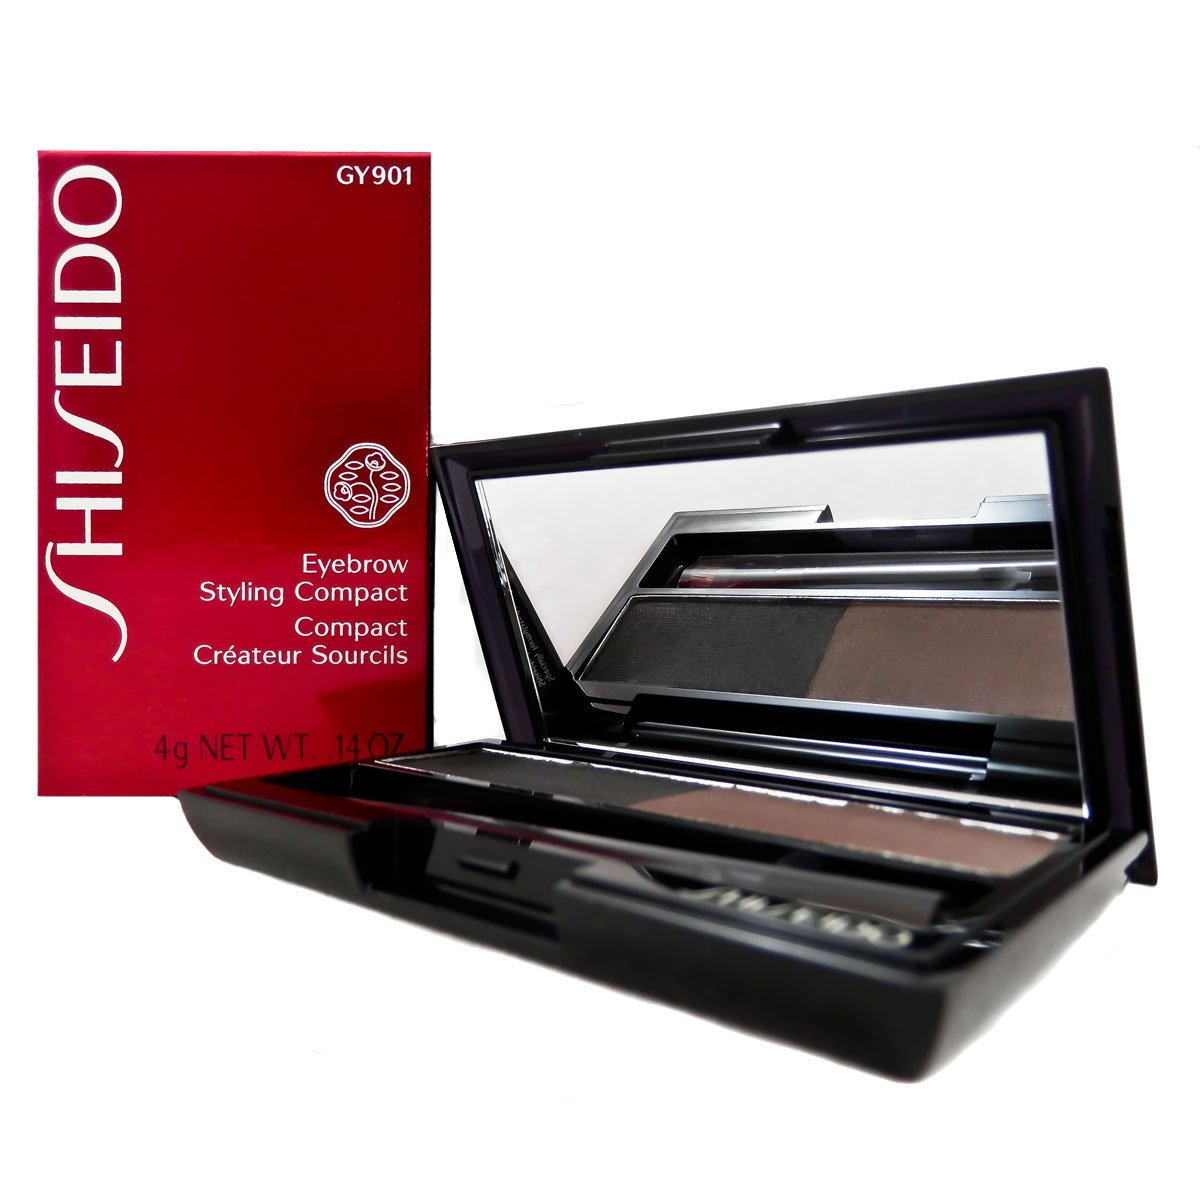 Shiseido Eyebrow Styling Compact for Women, No. GY901 Deep Brown, 0.14 oz by Shiseido (Image #1)